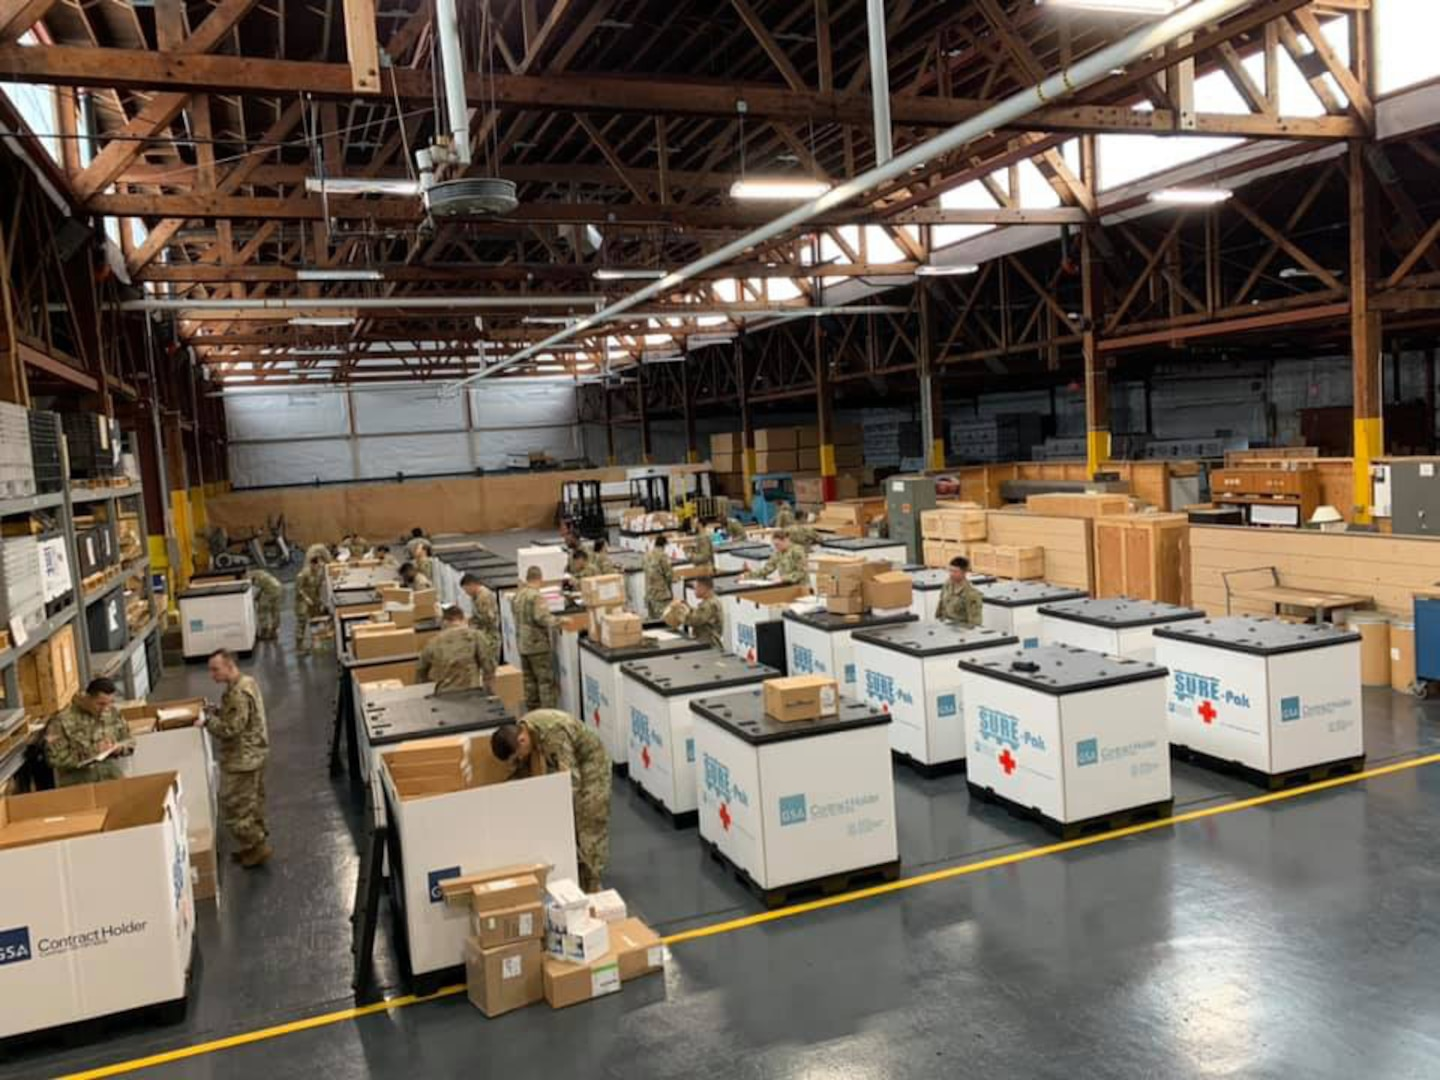 Soldiers from the 551st Medical Company (Logistics) and the 627th Hospital Center unload tri-walls of medical supplies as they arrive at Joint Base Lewis McChord, Washington, in support of COVID-19 relief efforts.